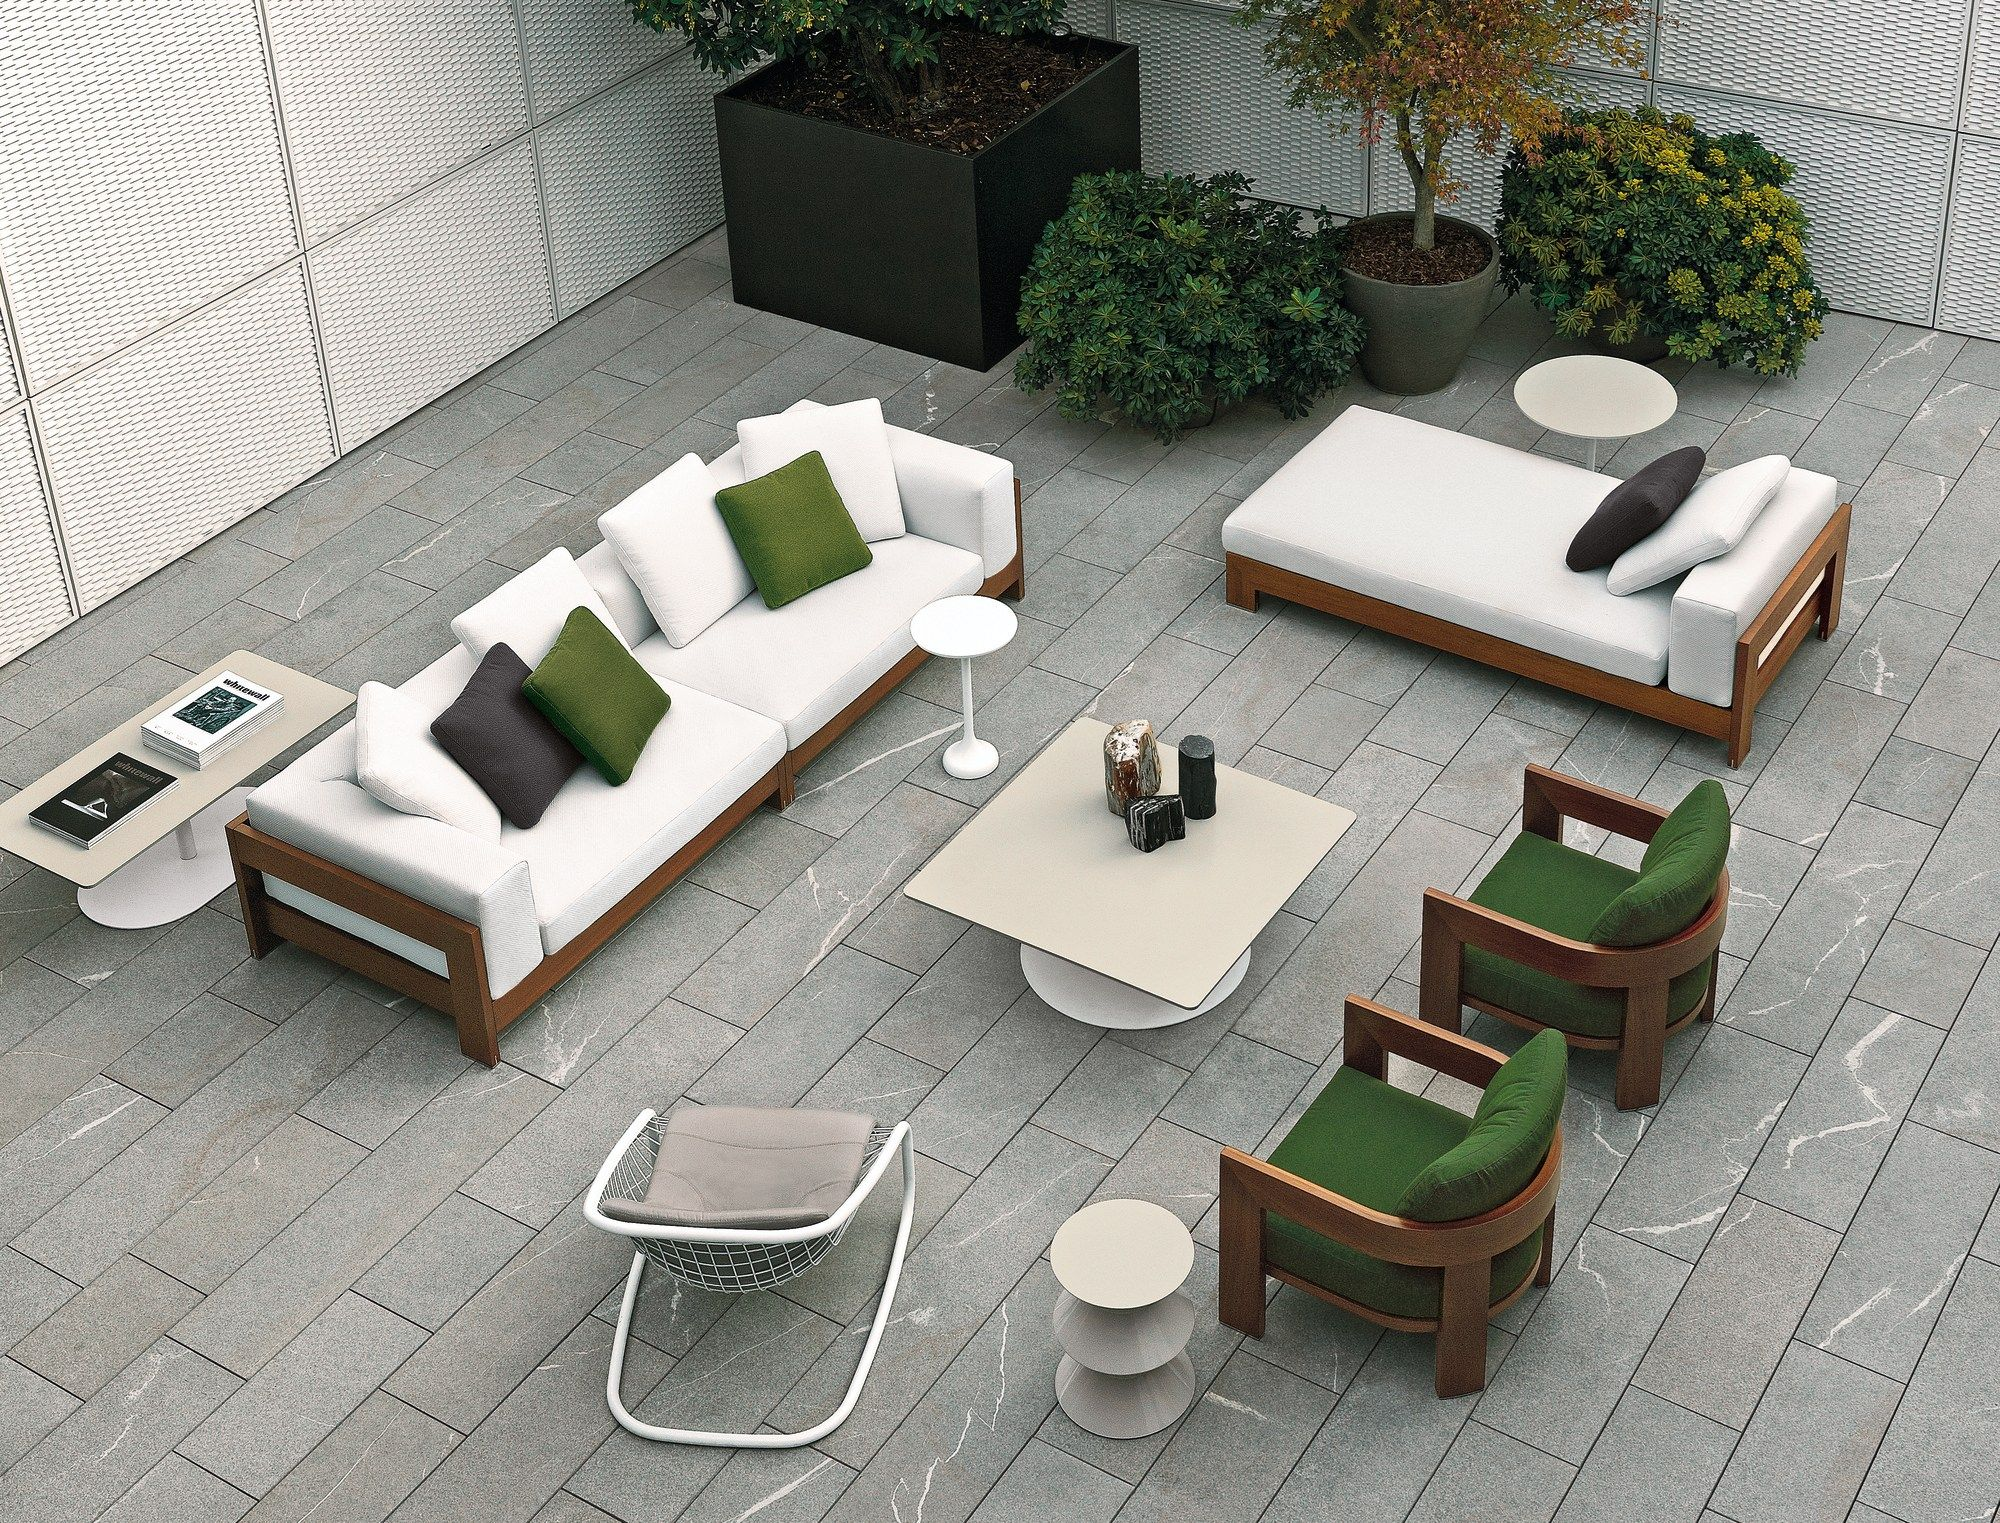 ALISON IROKO OUTDOOR by Minotti design Roberto Minotti | pedregal ...